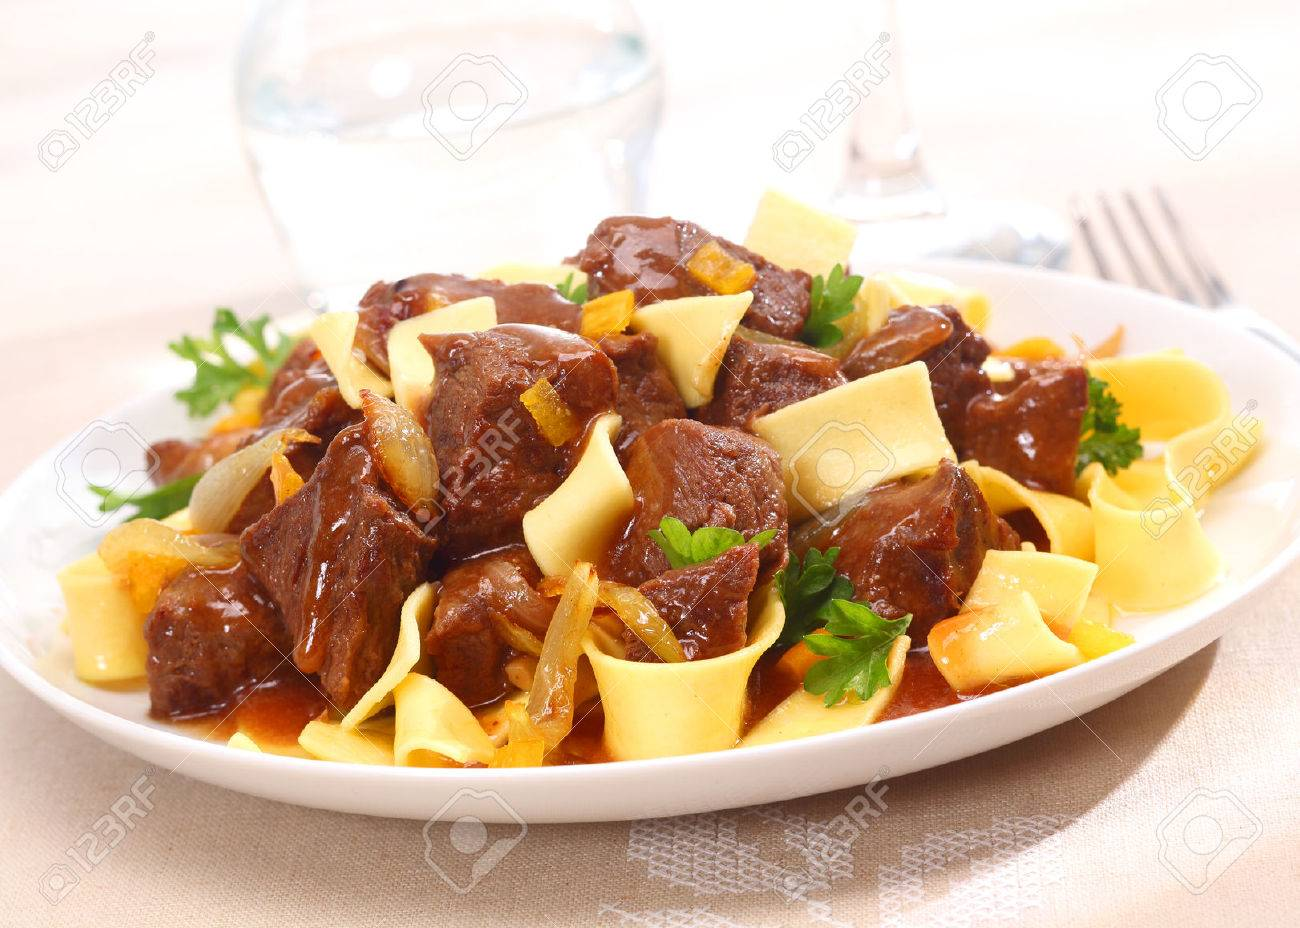 Serving On A Plate Of Beef Goulash A Stew That Originated In Hungary Served